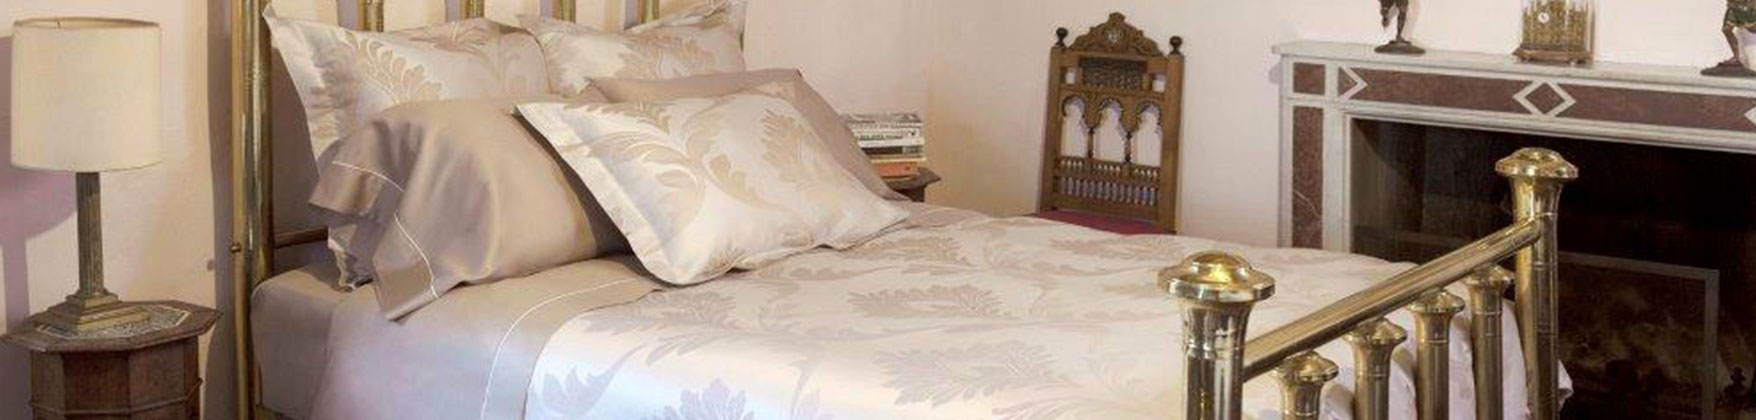 duvets constrain bedding boho covers linen fiona sale on embellished b duvet anthropologie an cover qlt category fit